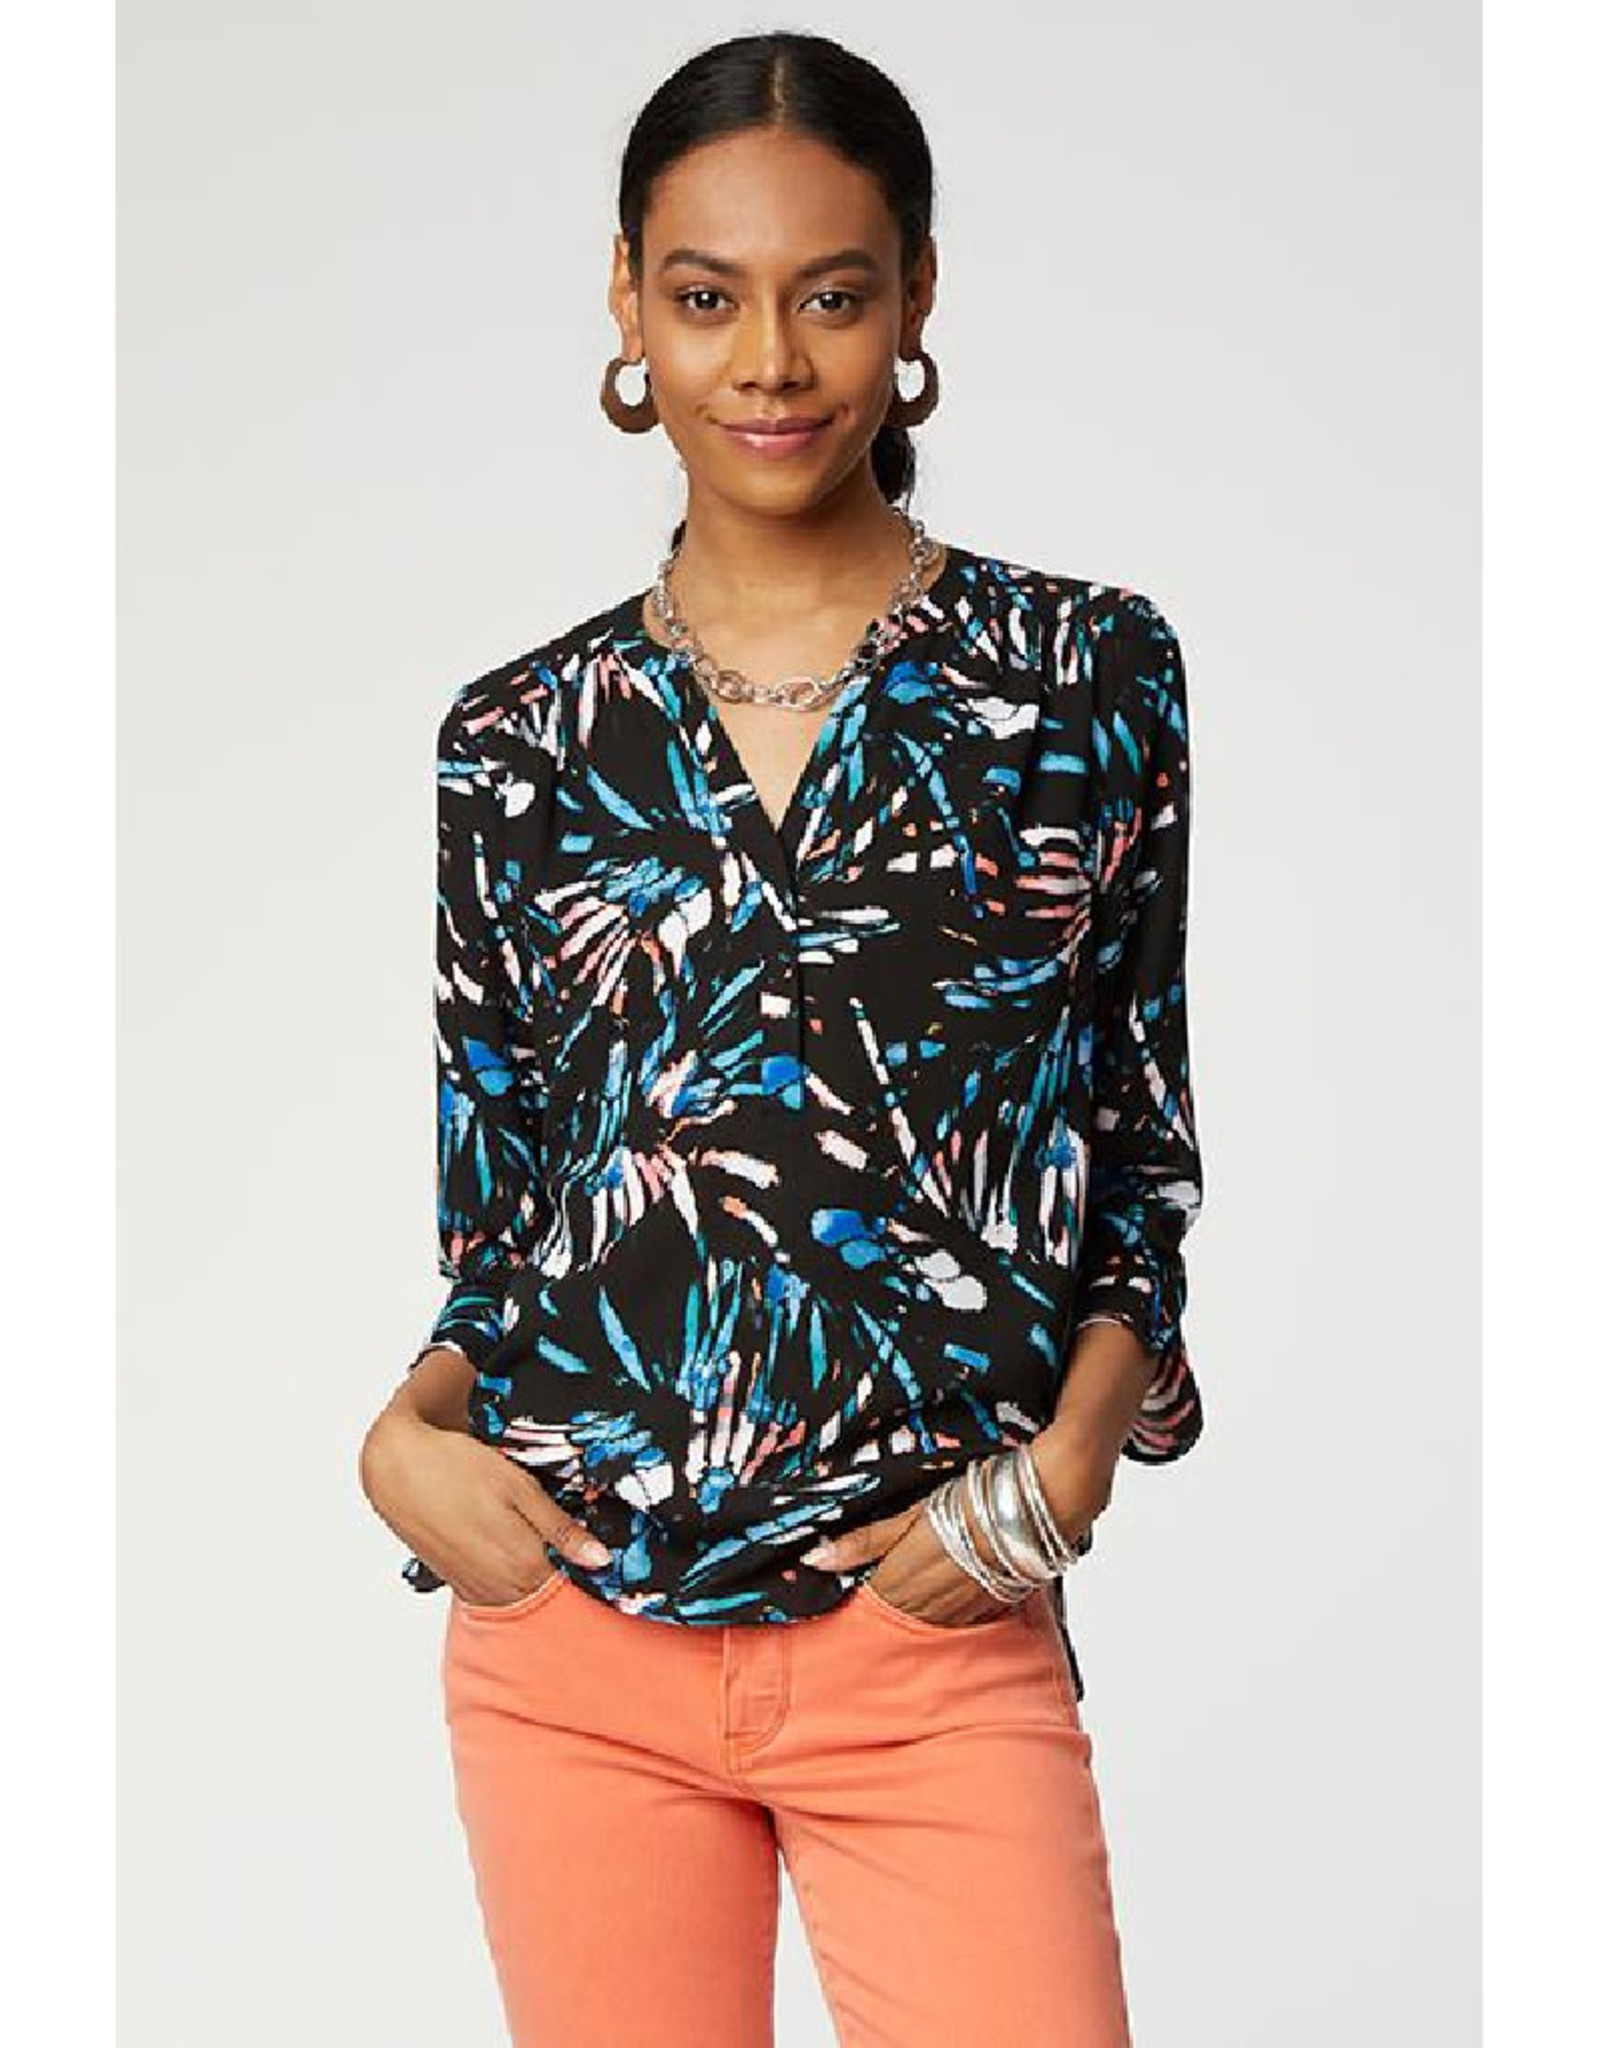 The Perfect Blouse in 4 Prints